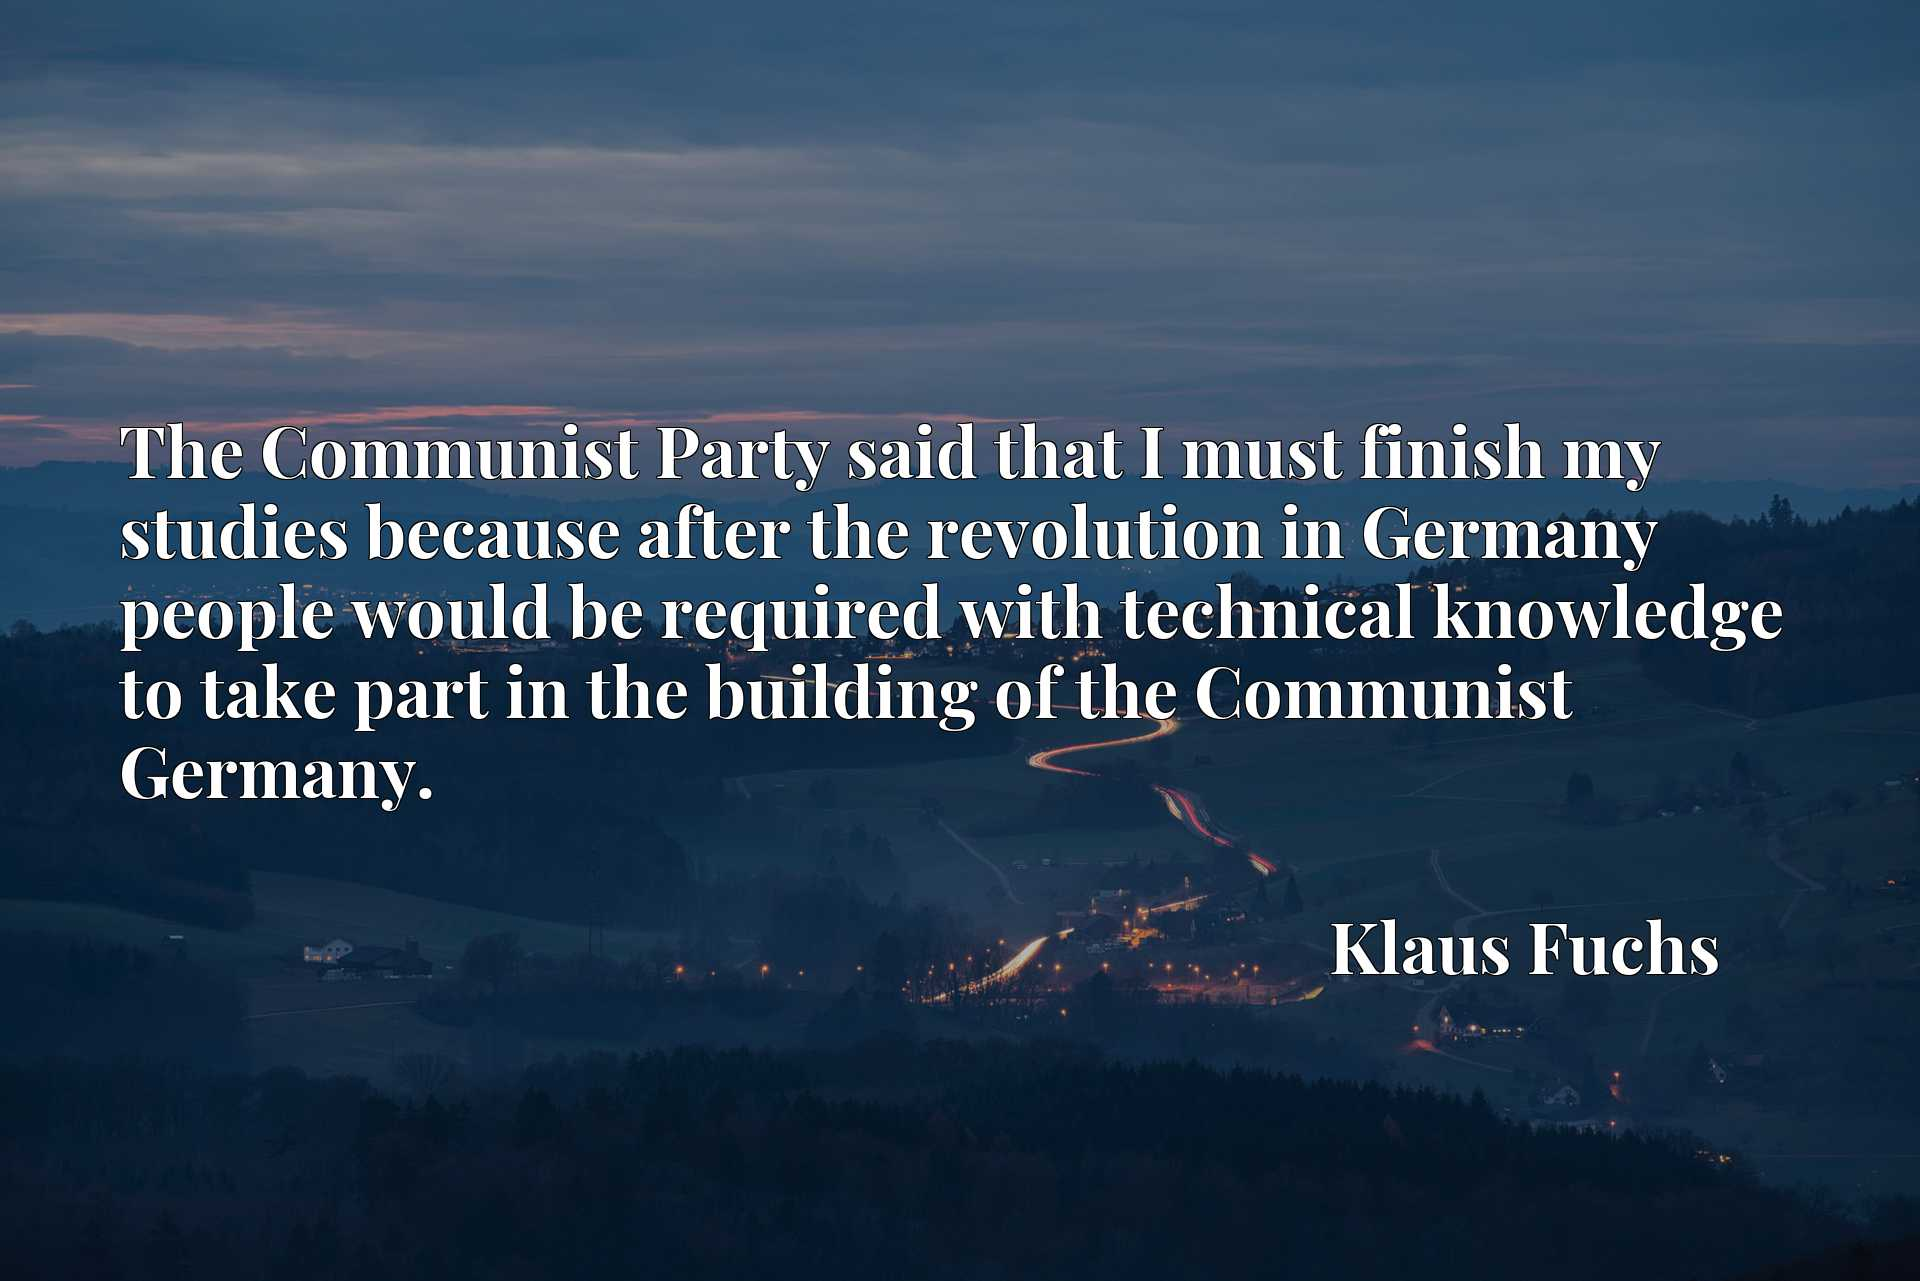 The Communist Party said that I must finish my studies because after the revolution in Germany people would be required with technical knowledge to take part in the building of the Communist Germany.